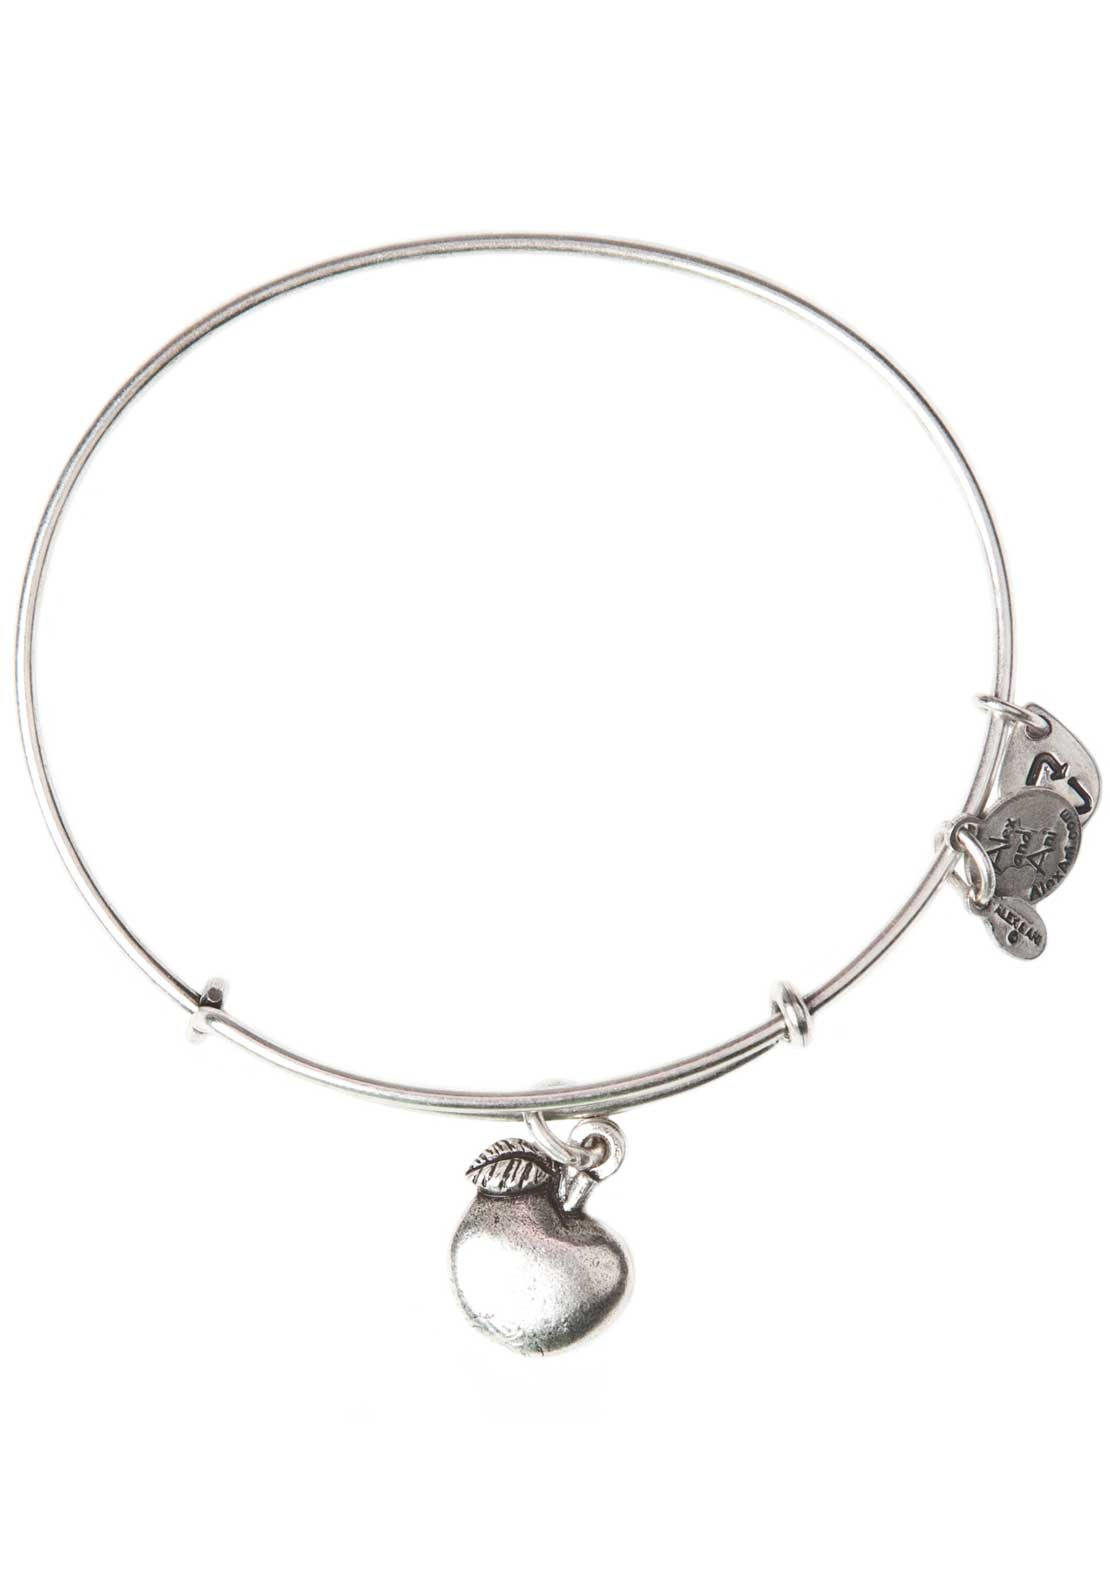 Alex and Ani (+) Energy Apple of Abundance Bracelet, Silver